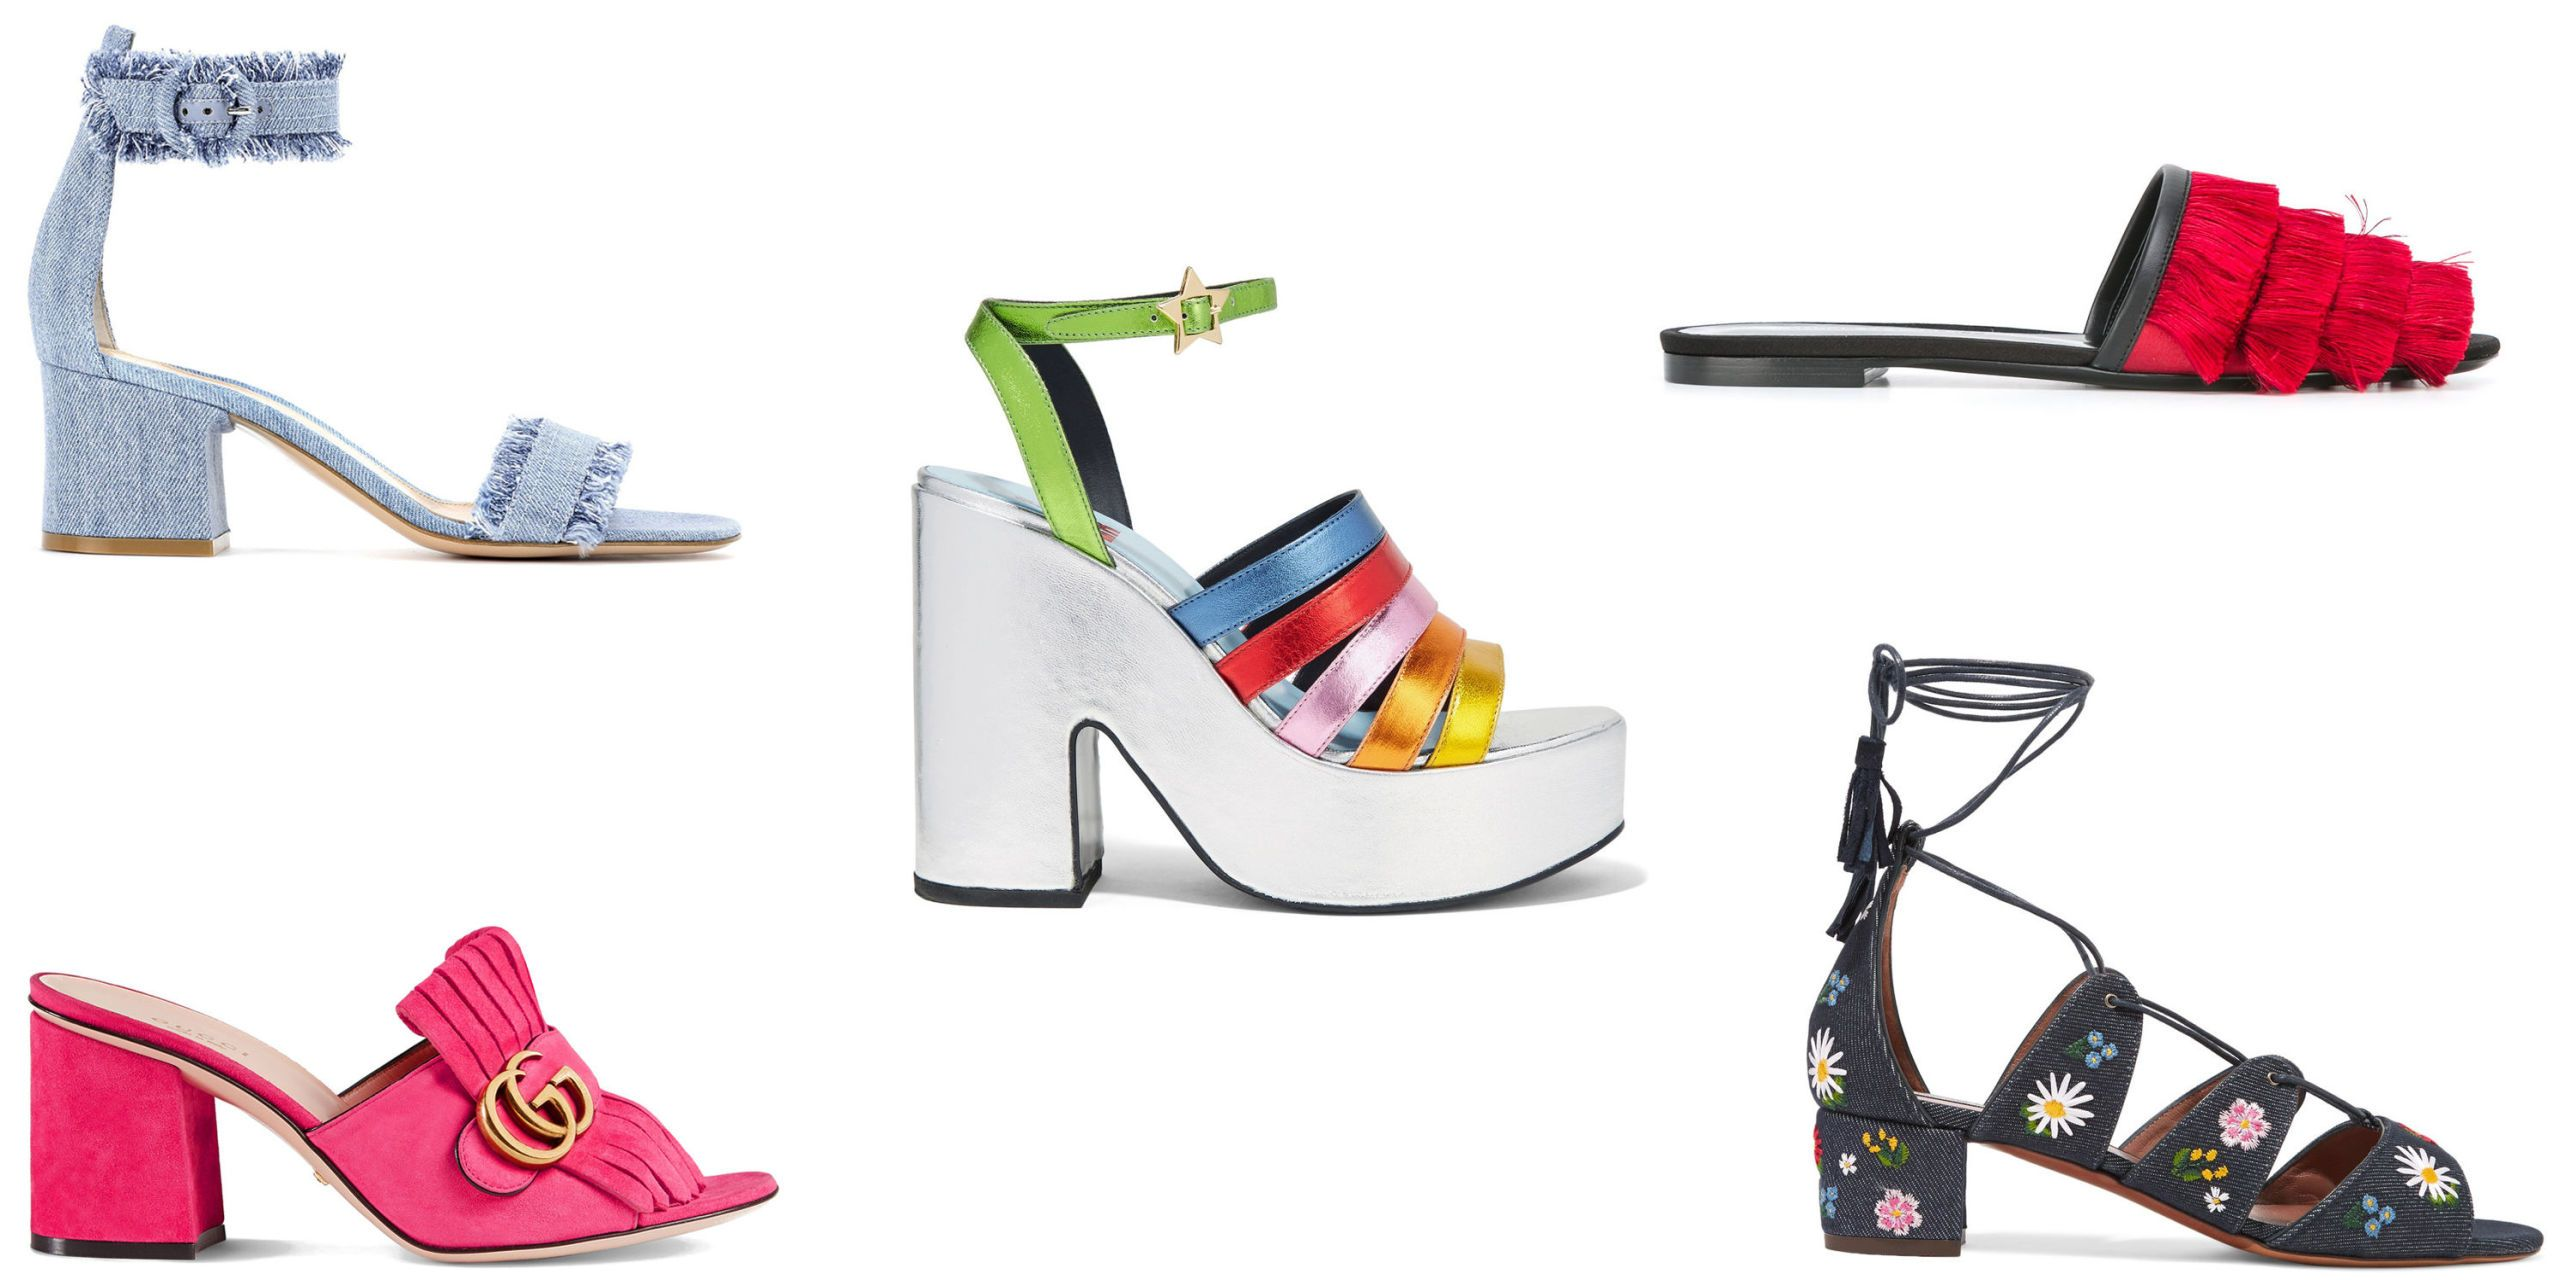 Colorful shoes to brighten up your look.